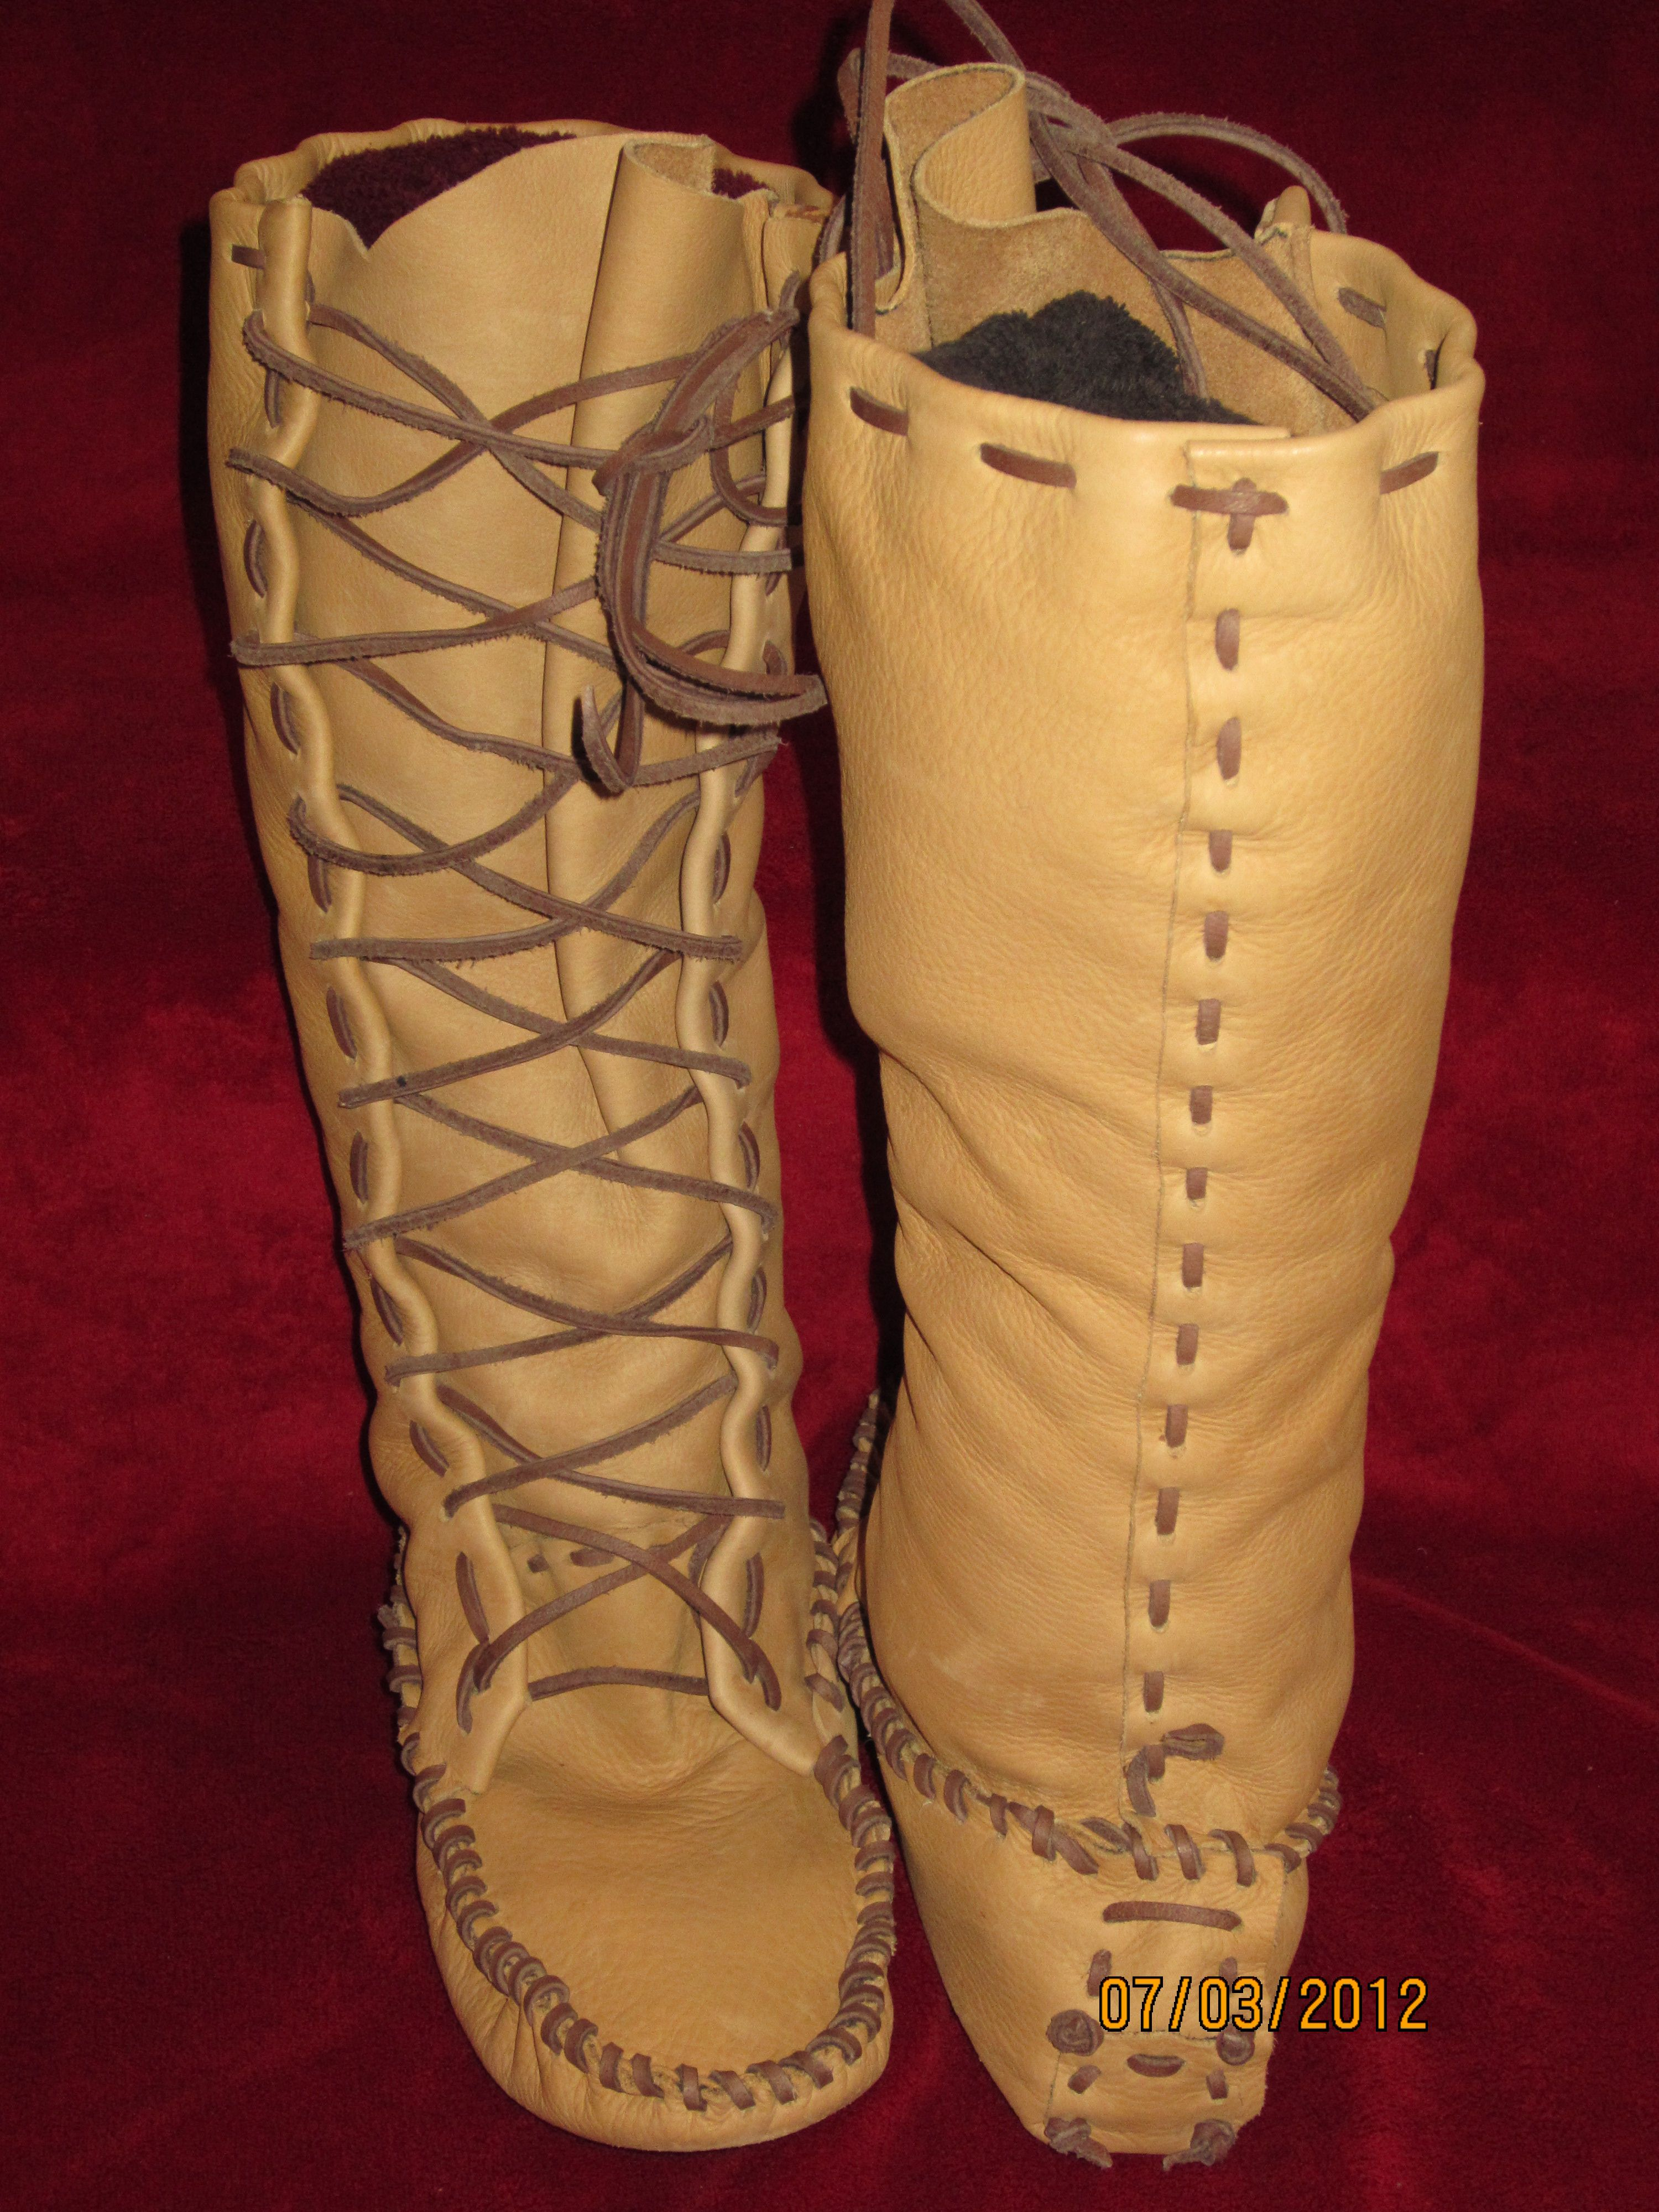 faf9819c7 Moccasins and Plainsman Boots | PM Custom Knives and Leather ...